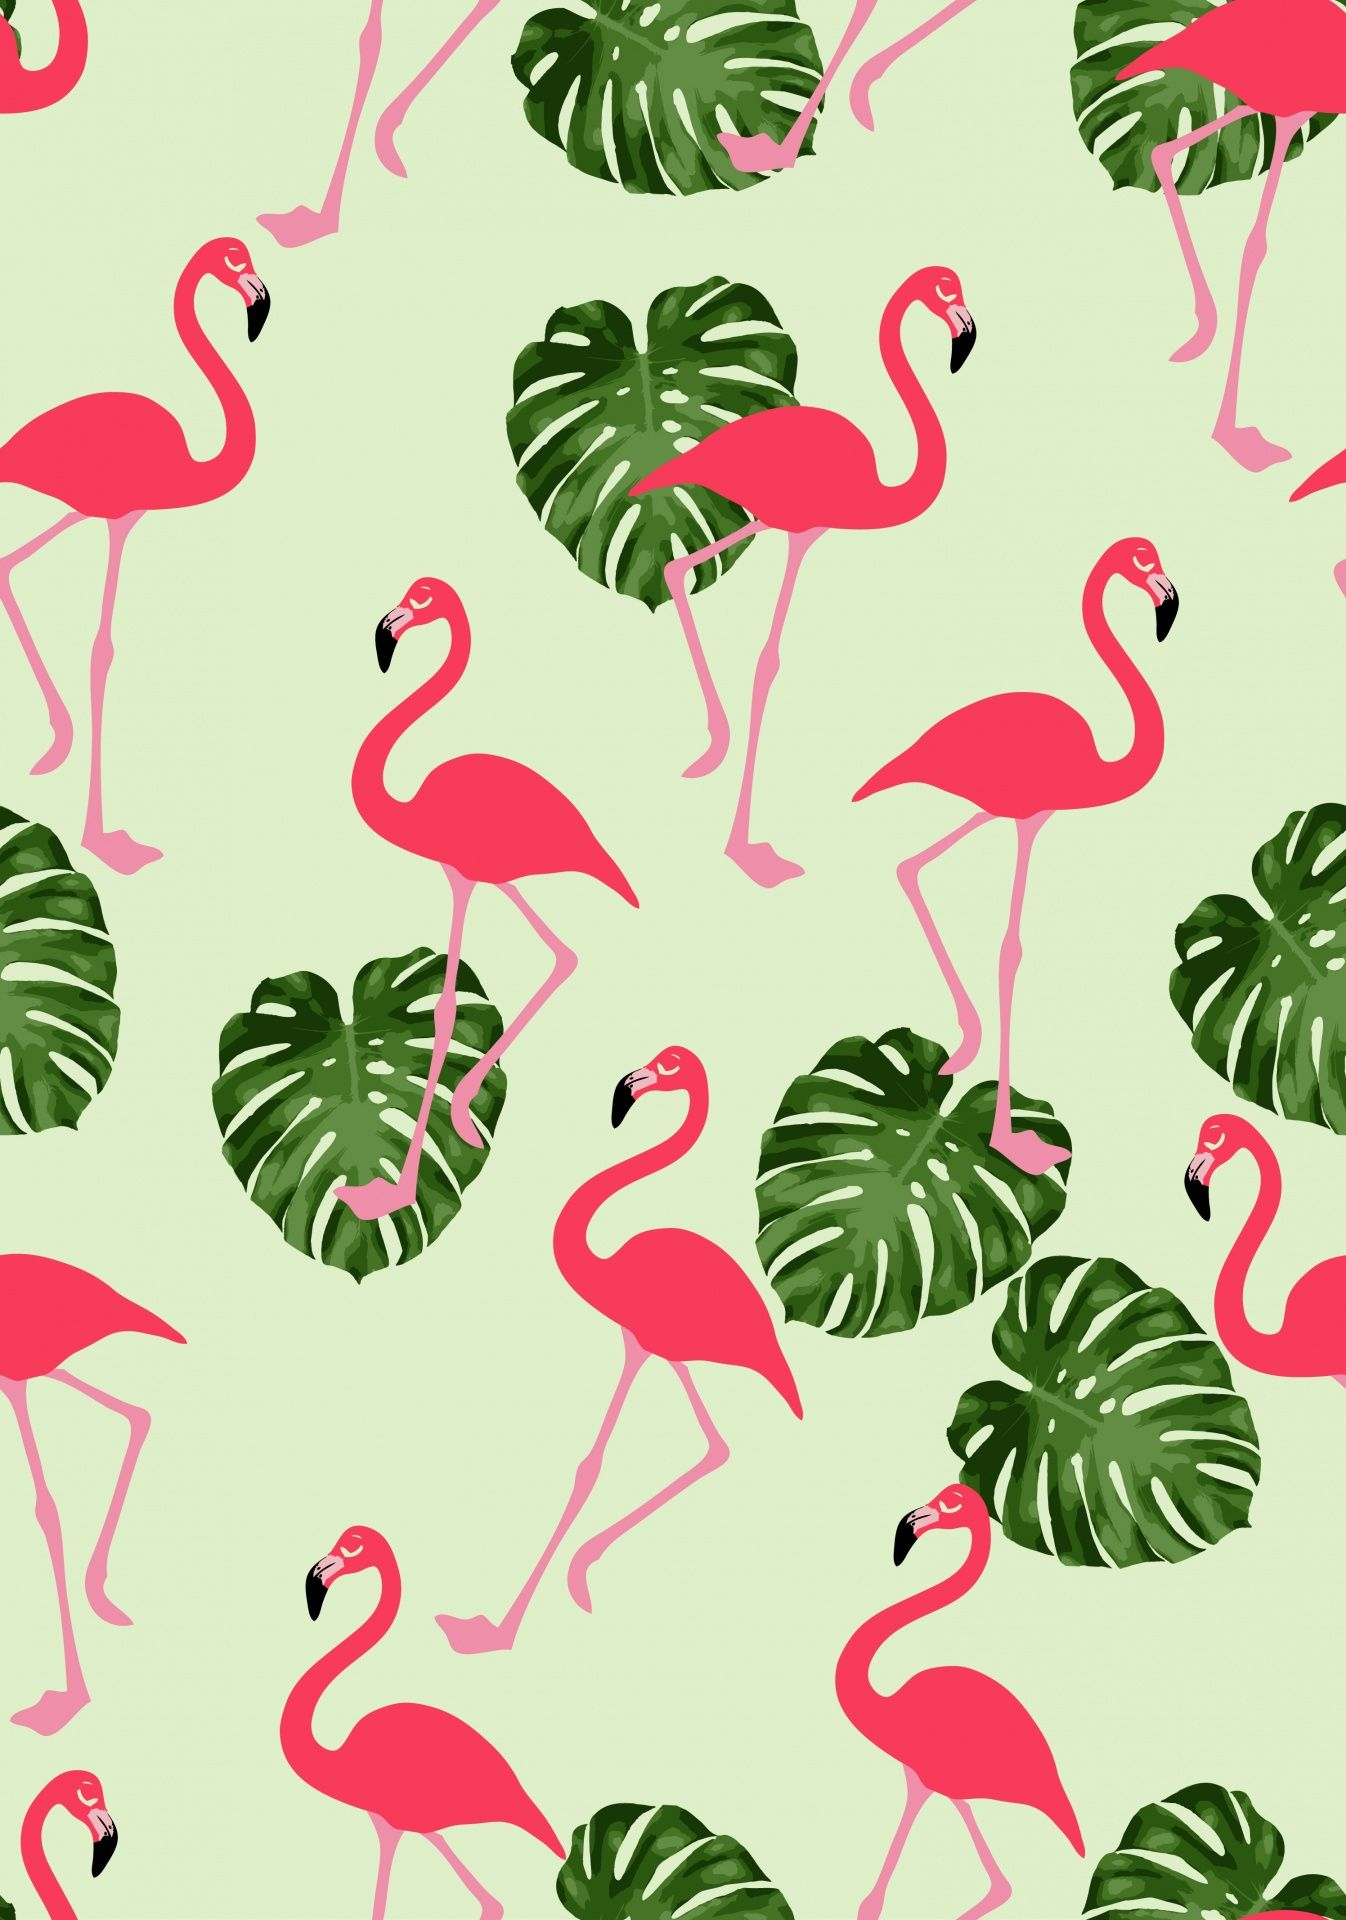 Afbeeldingsresultaat voor flamingo wallpaper Iphone